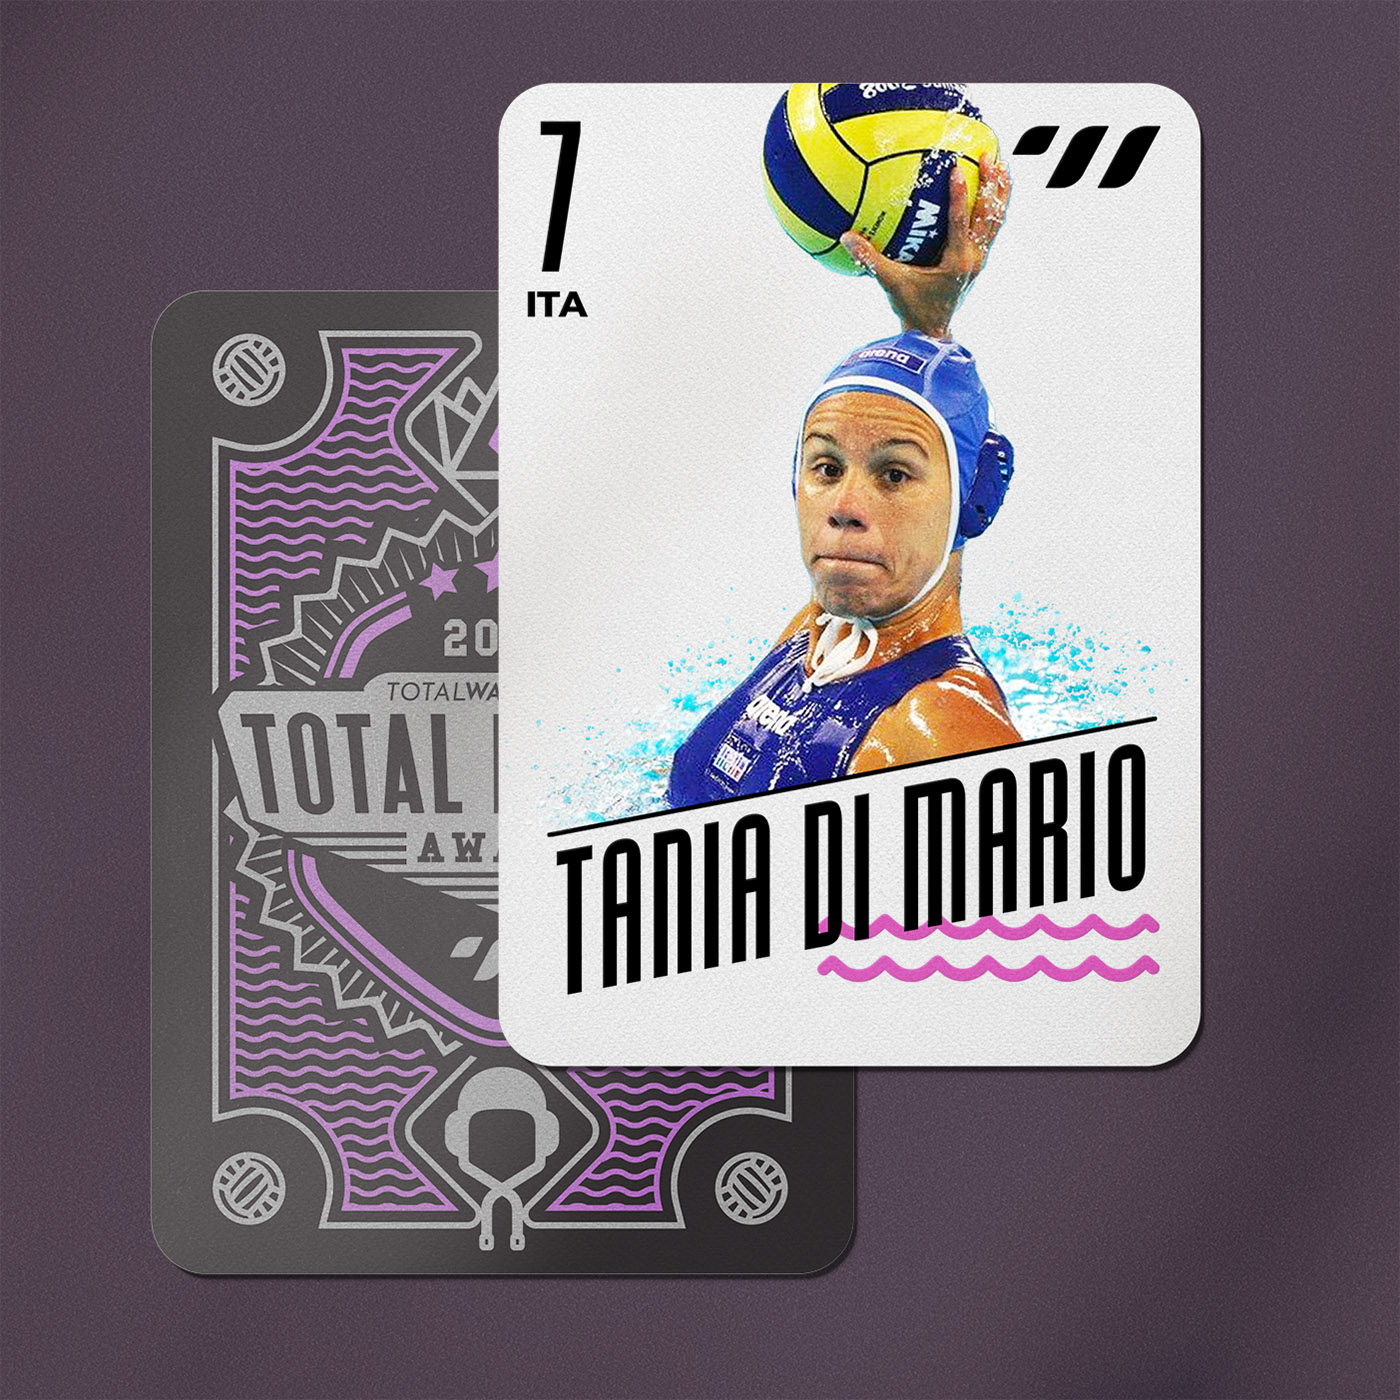 RIGHT SIDE - Tania Di Mario (ITA)